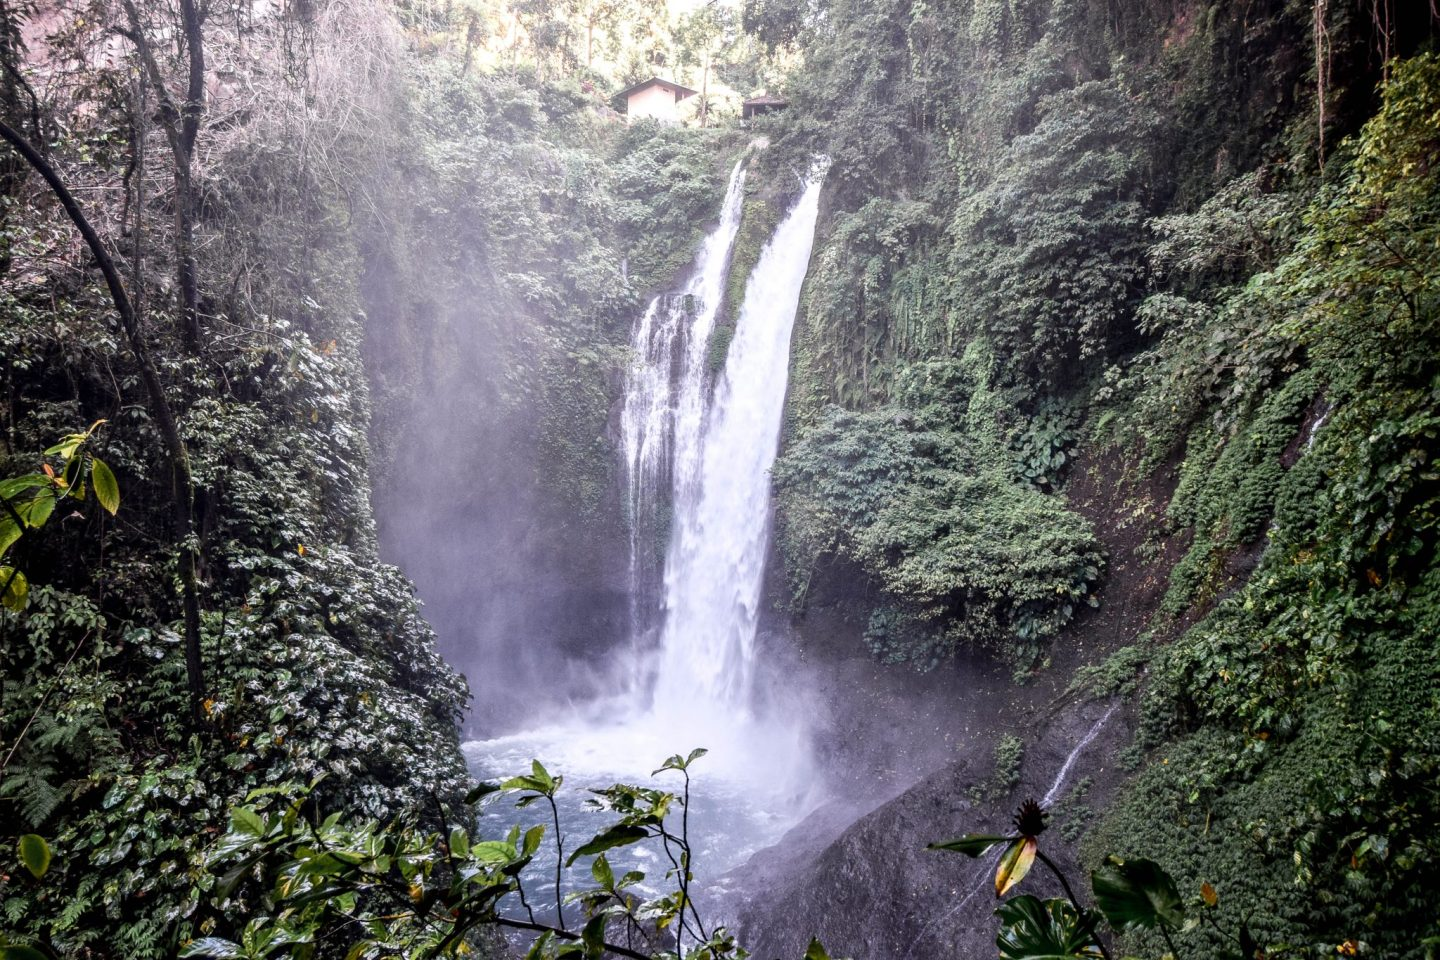 Aling Aling Waterfall Bali – How To Get There, Prices & More